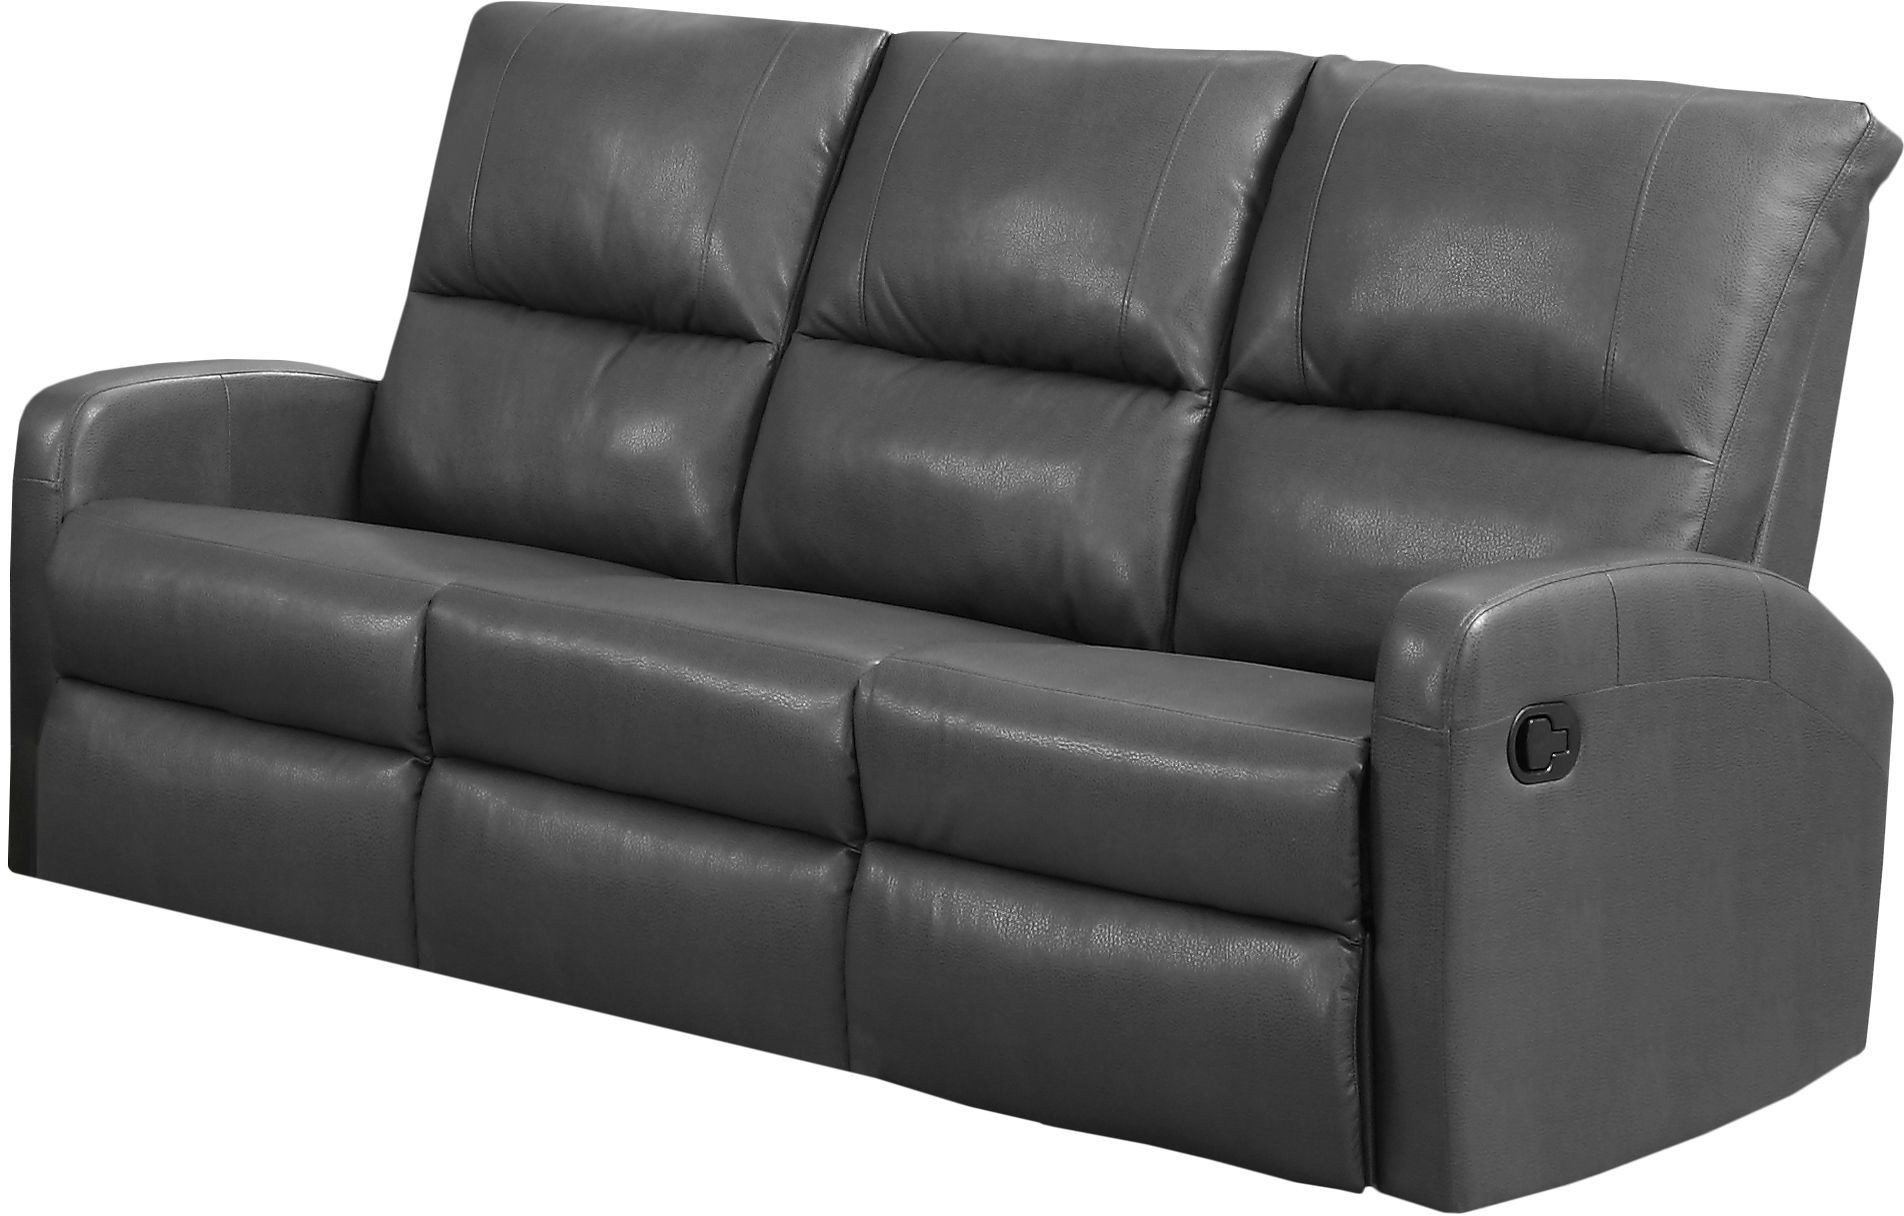 84gy 3 charcoal grey bonded leather reclining sofa 84gy 3 monarch. Black Bedroom Furniture Sets. Home Design Ideas